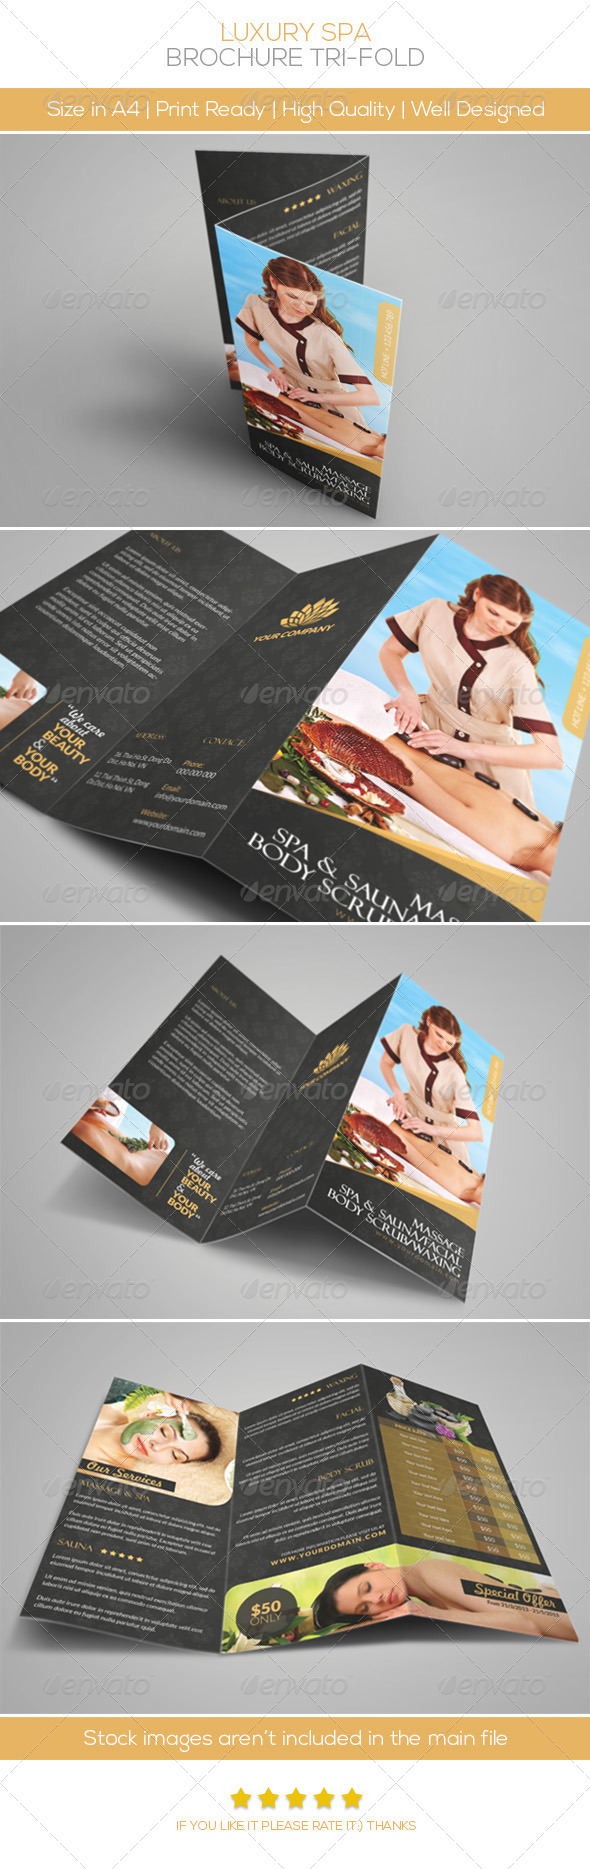 Luxury Spa Brochure Tri-fold - Brochures Print Templates